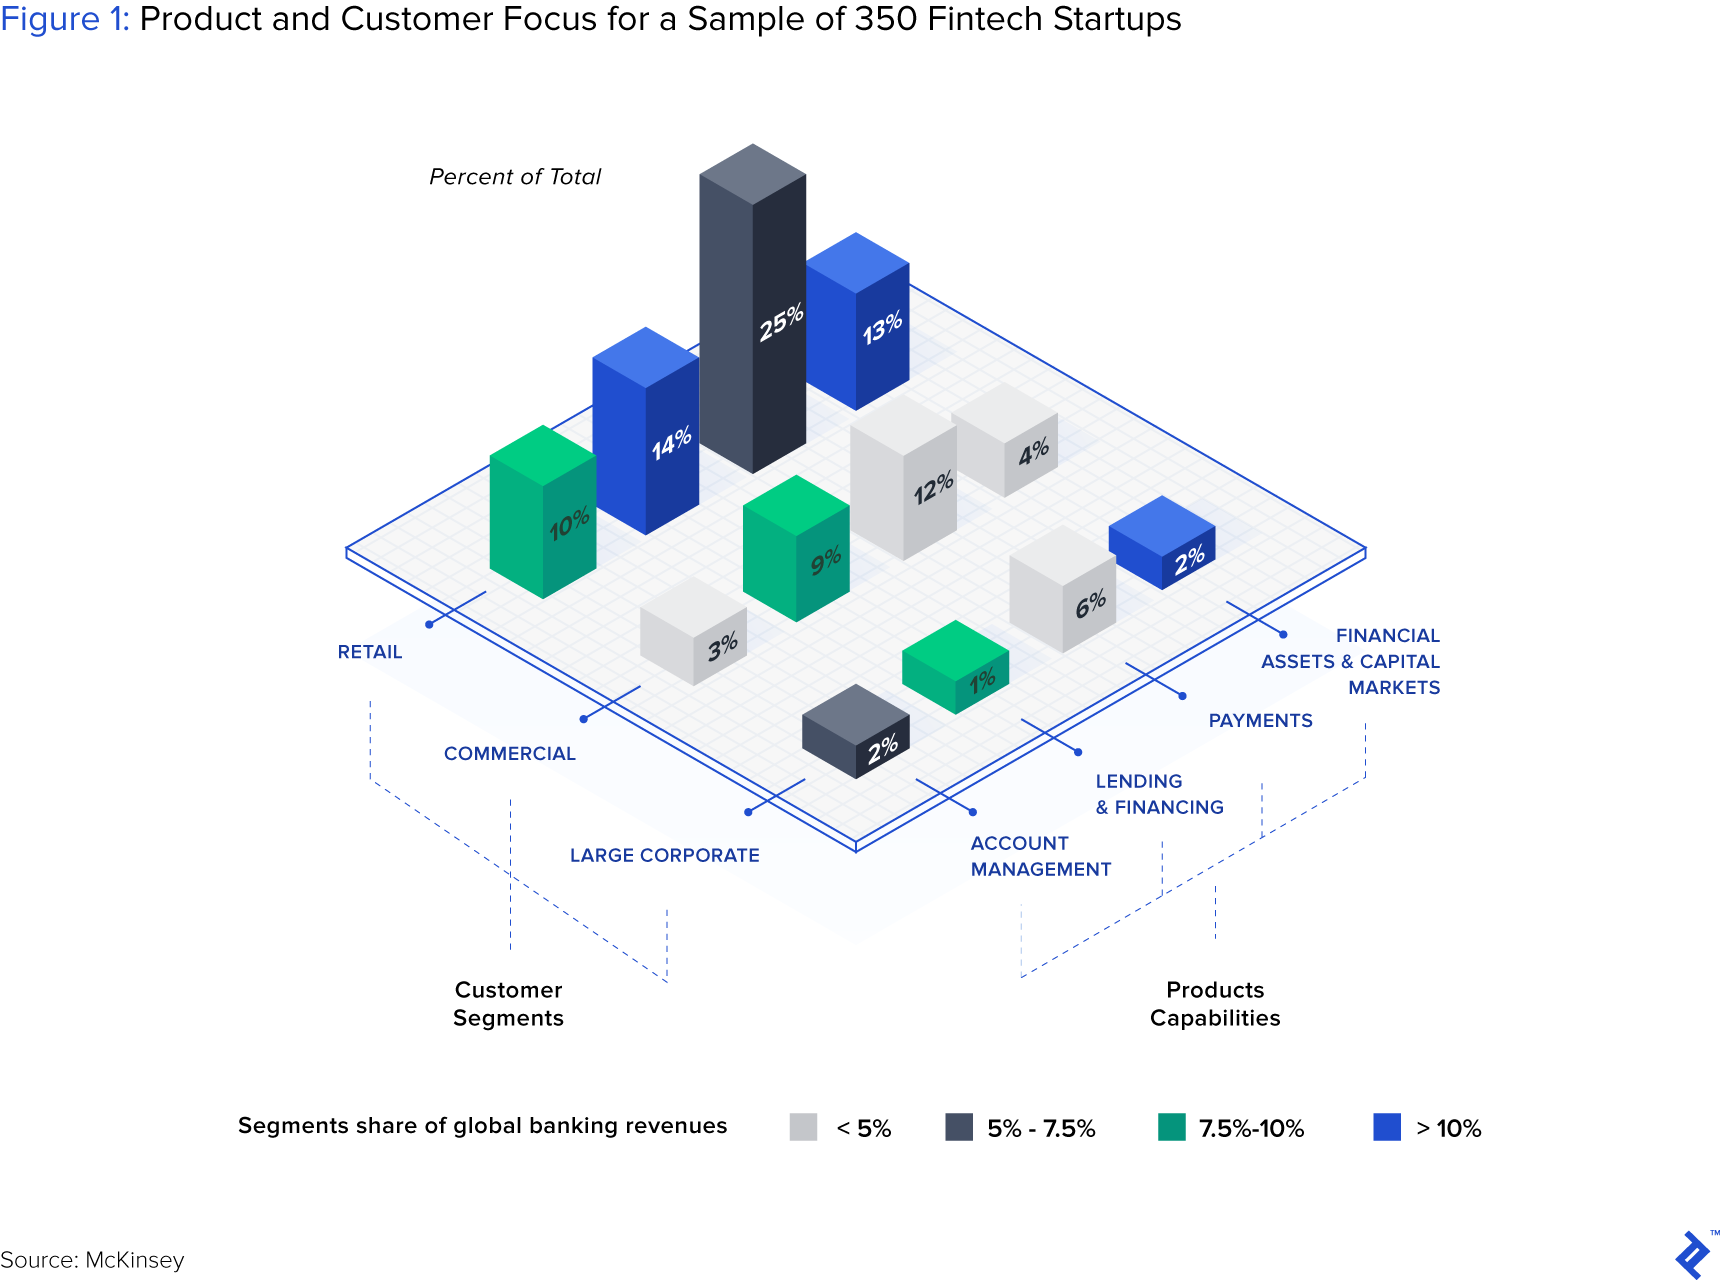 Figure 1: Product and Customer Focus for a Sample of 350 Fintech Startups